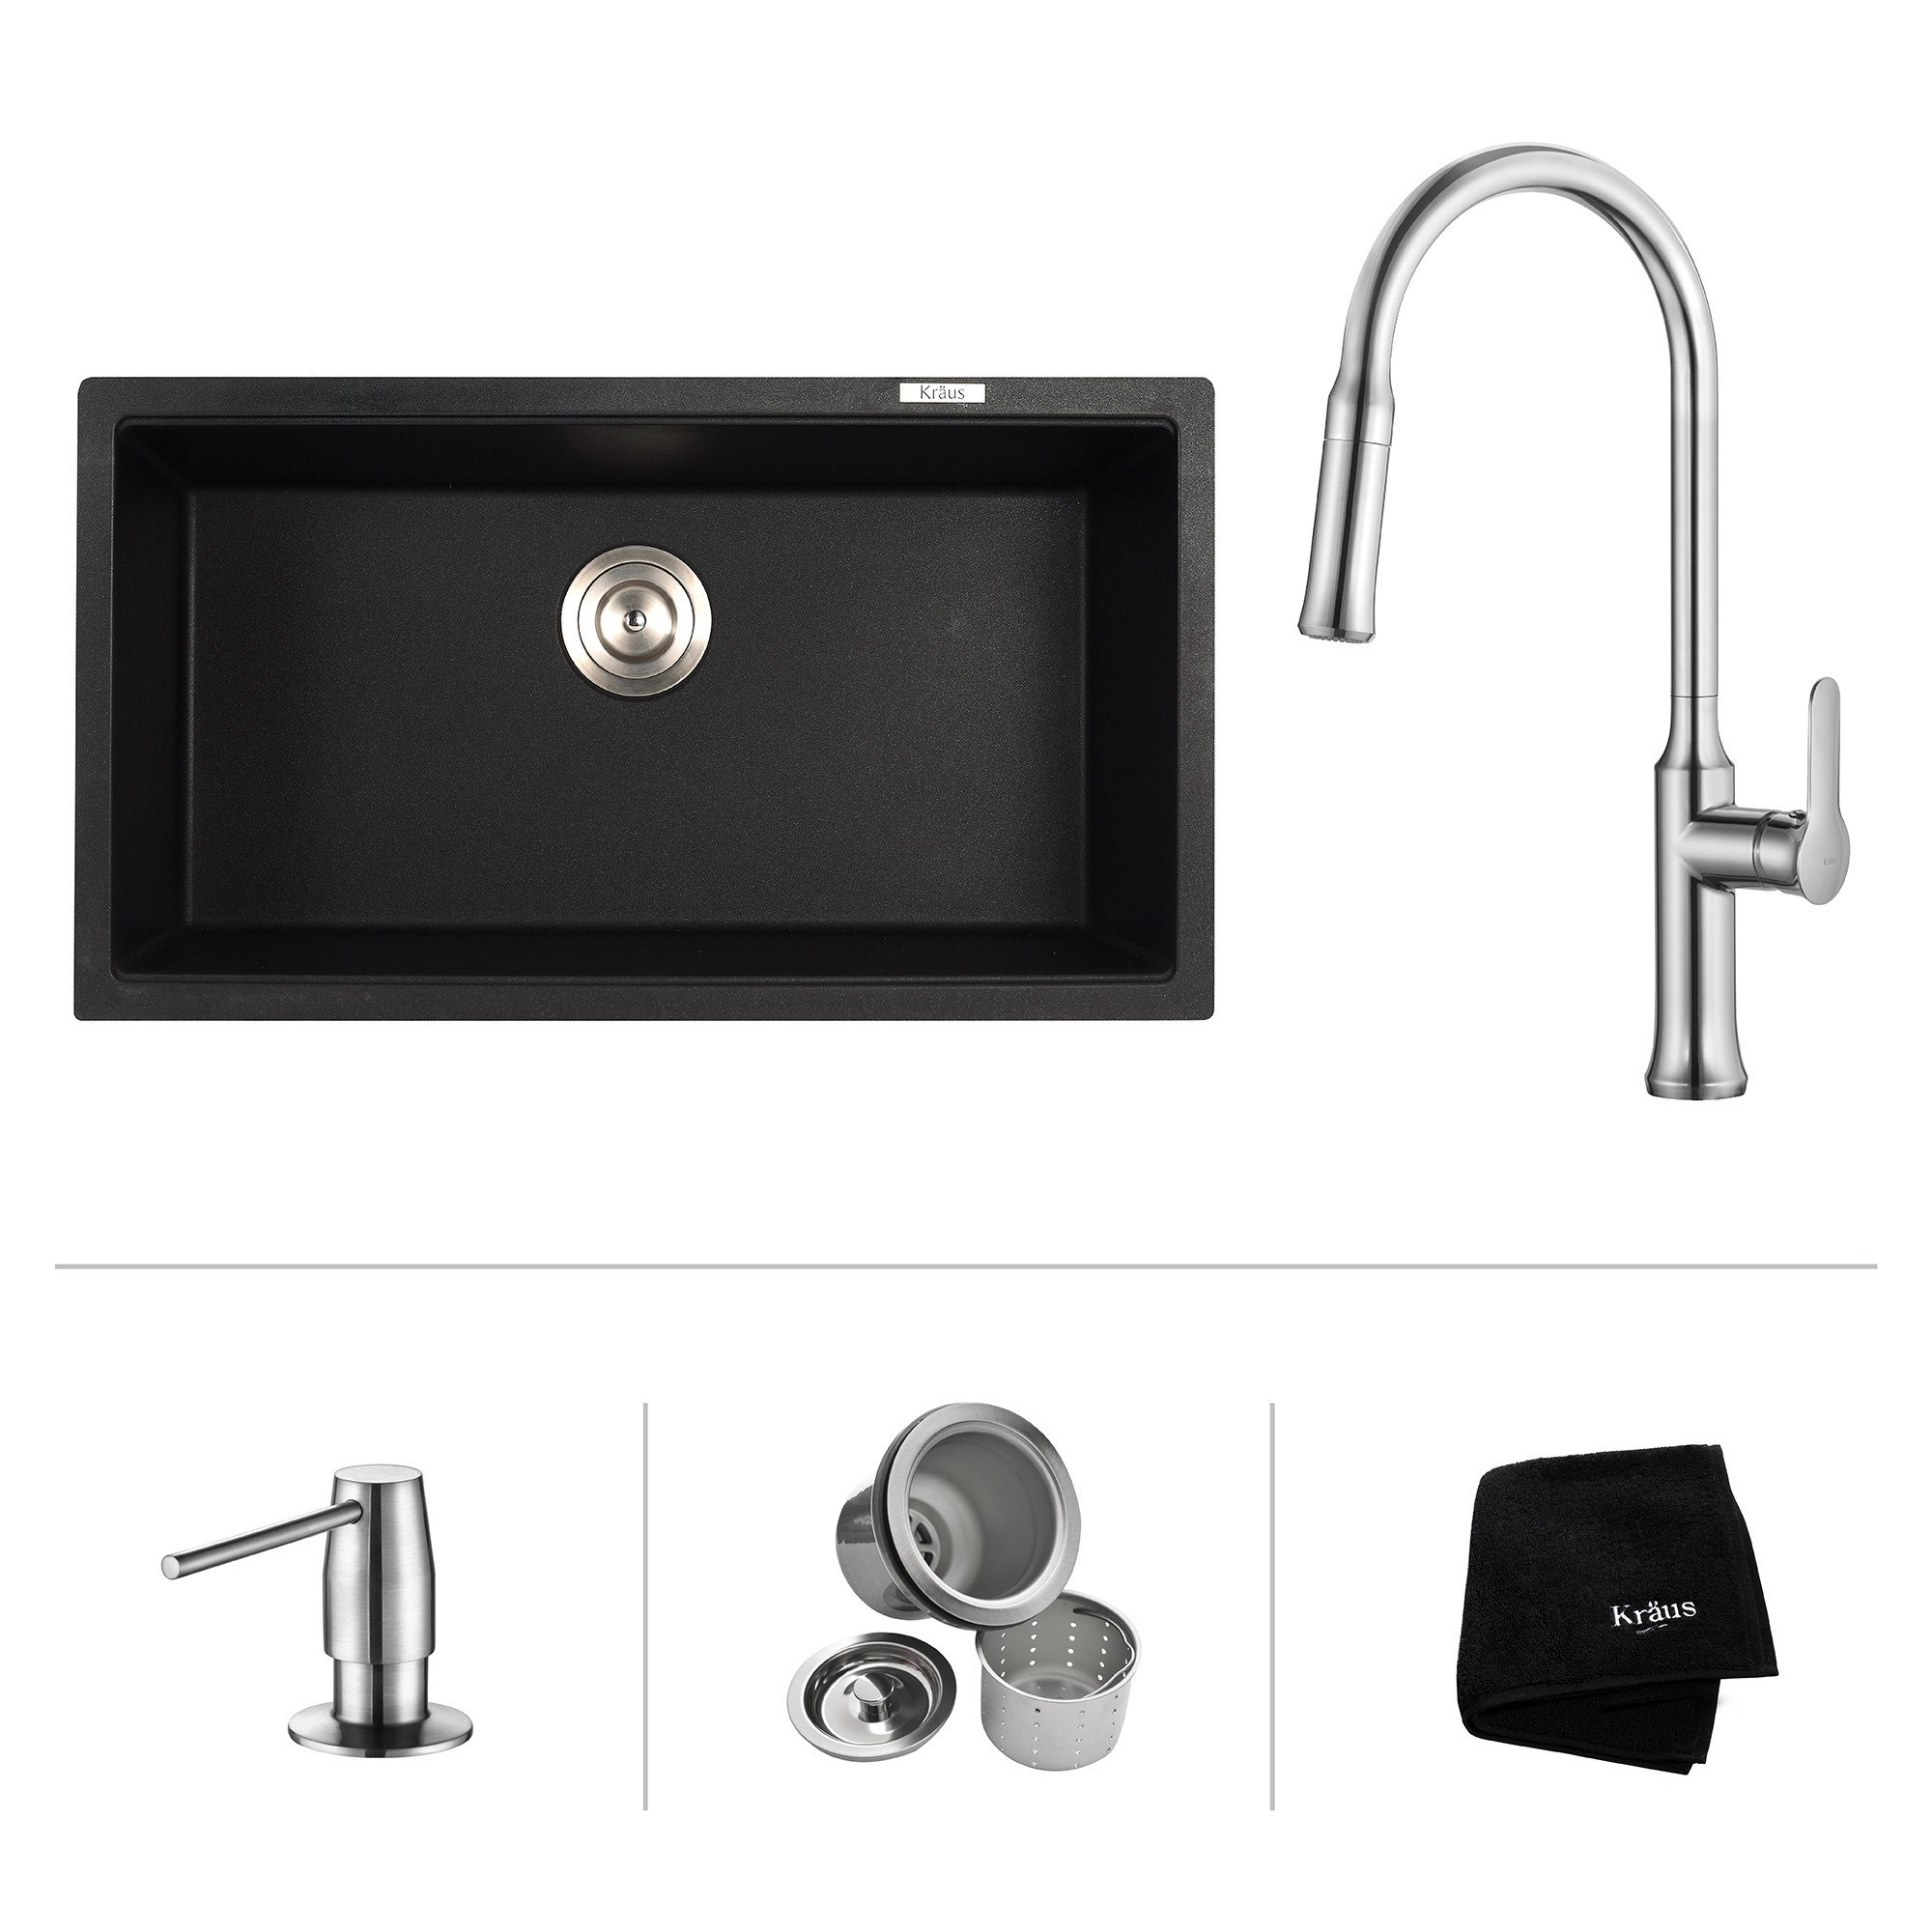 Kraus KGU-413B-1630-42 31 Inch Undermount Single Bowl Sink with Pull Down Faucet & Soap Dispenser